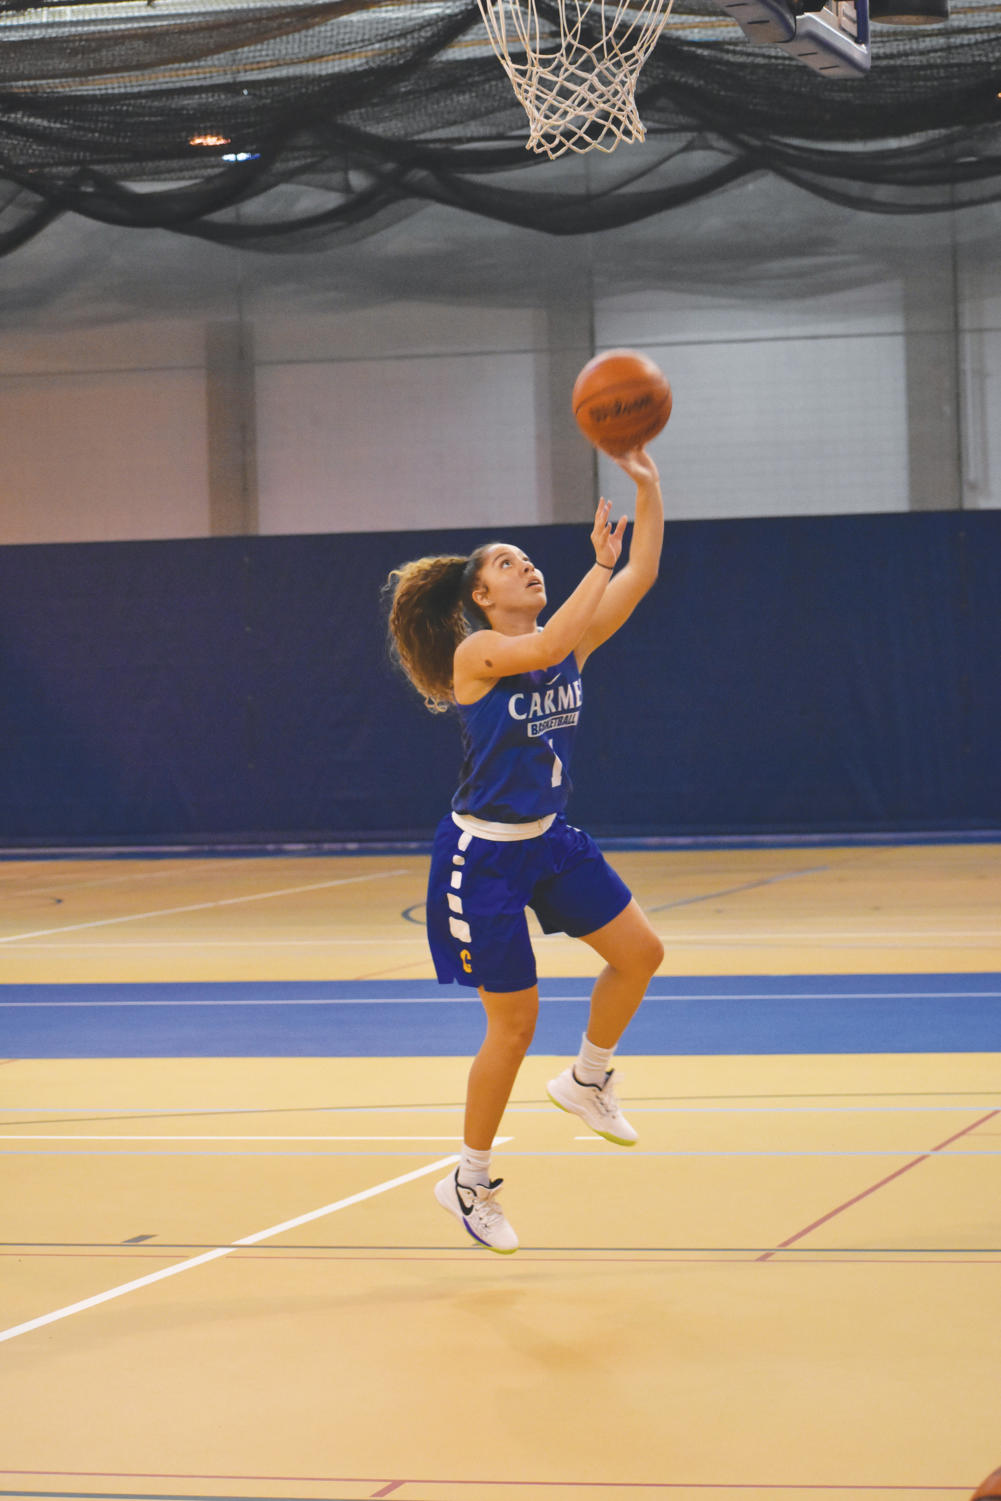 SOFT TOUCH: Senior Kiara Gill shoots a floater during practice. Gill said the team shared a close bond even before tryouts commenced, adding that those bonds will be crucial for a successful season.